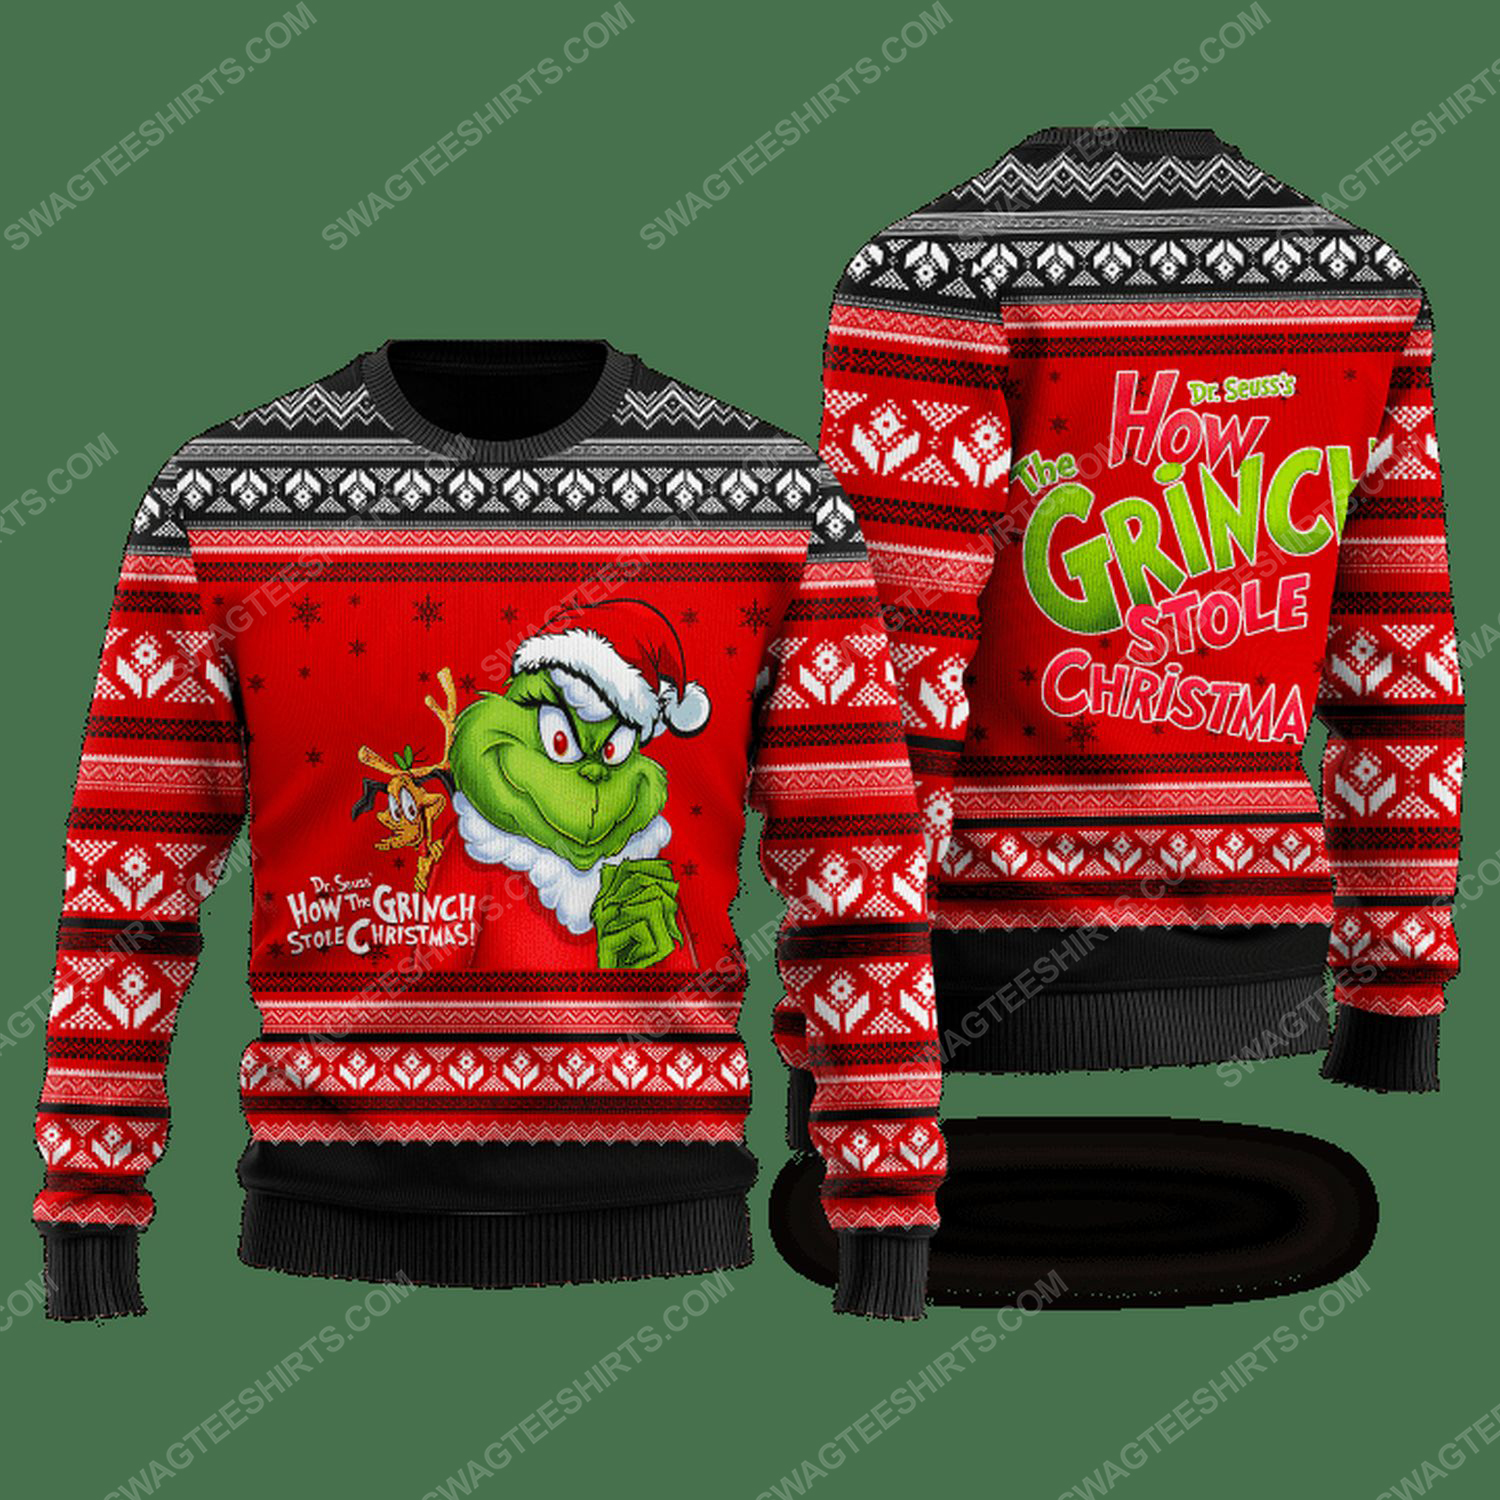 How grinch stole christmas ugly christmas sweater